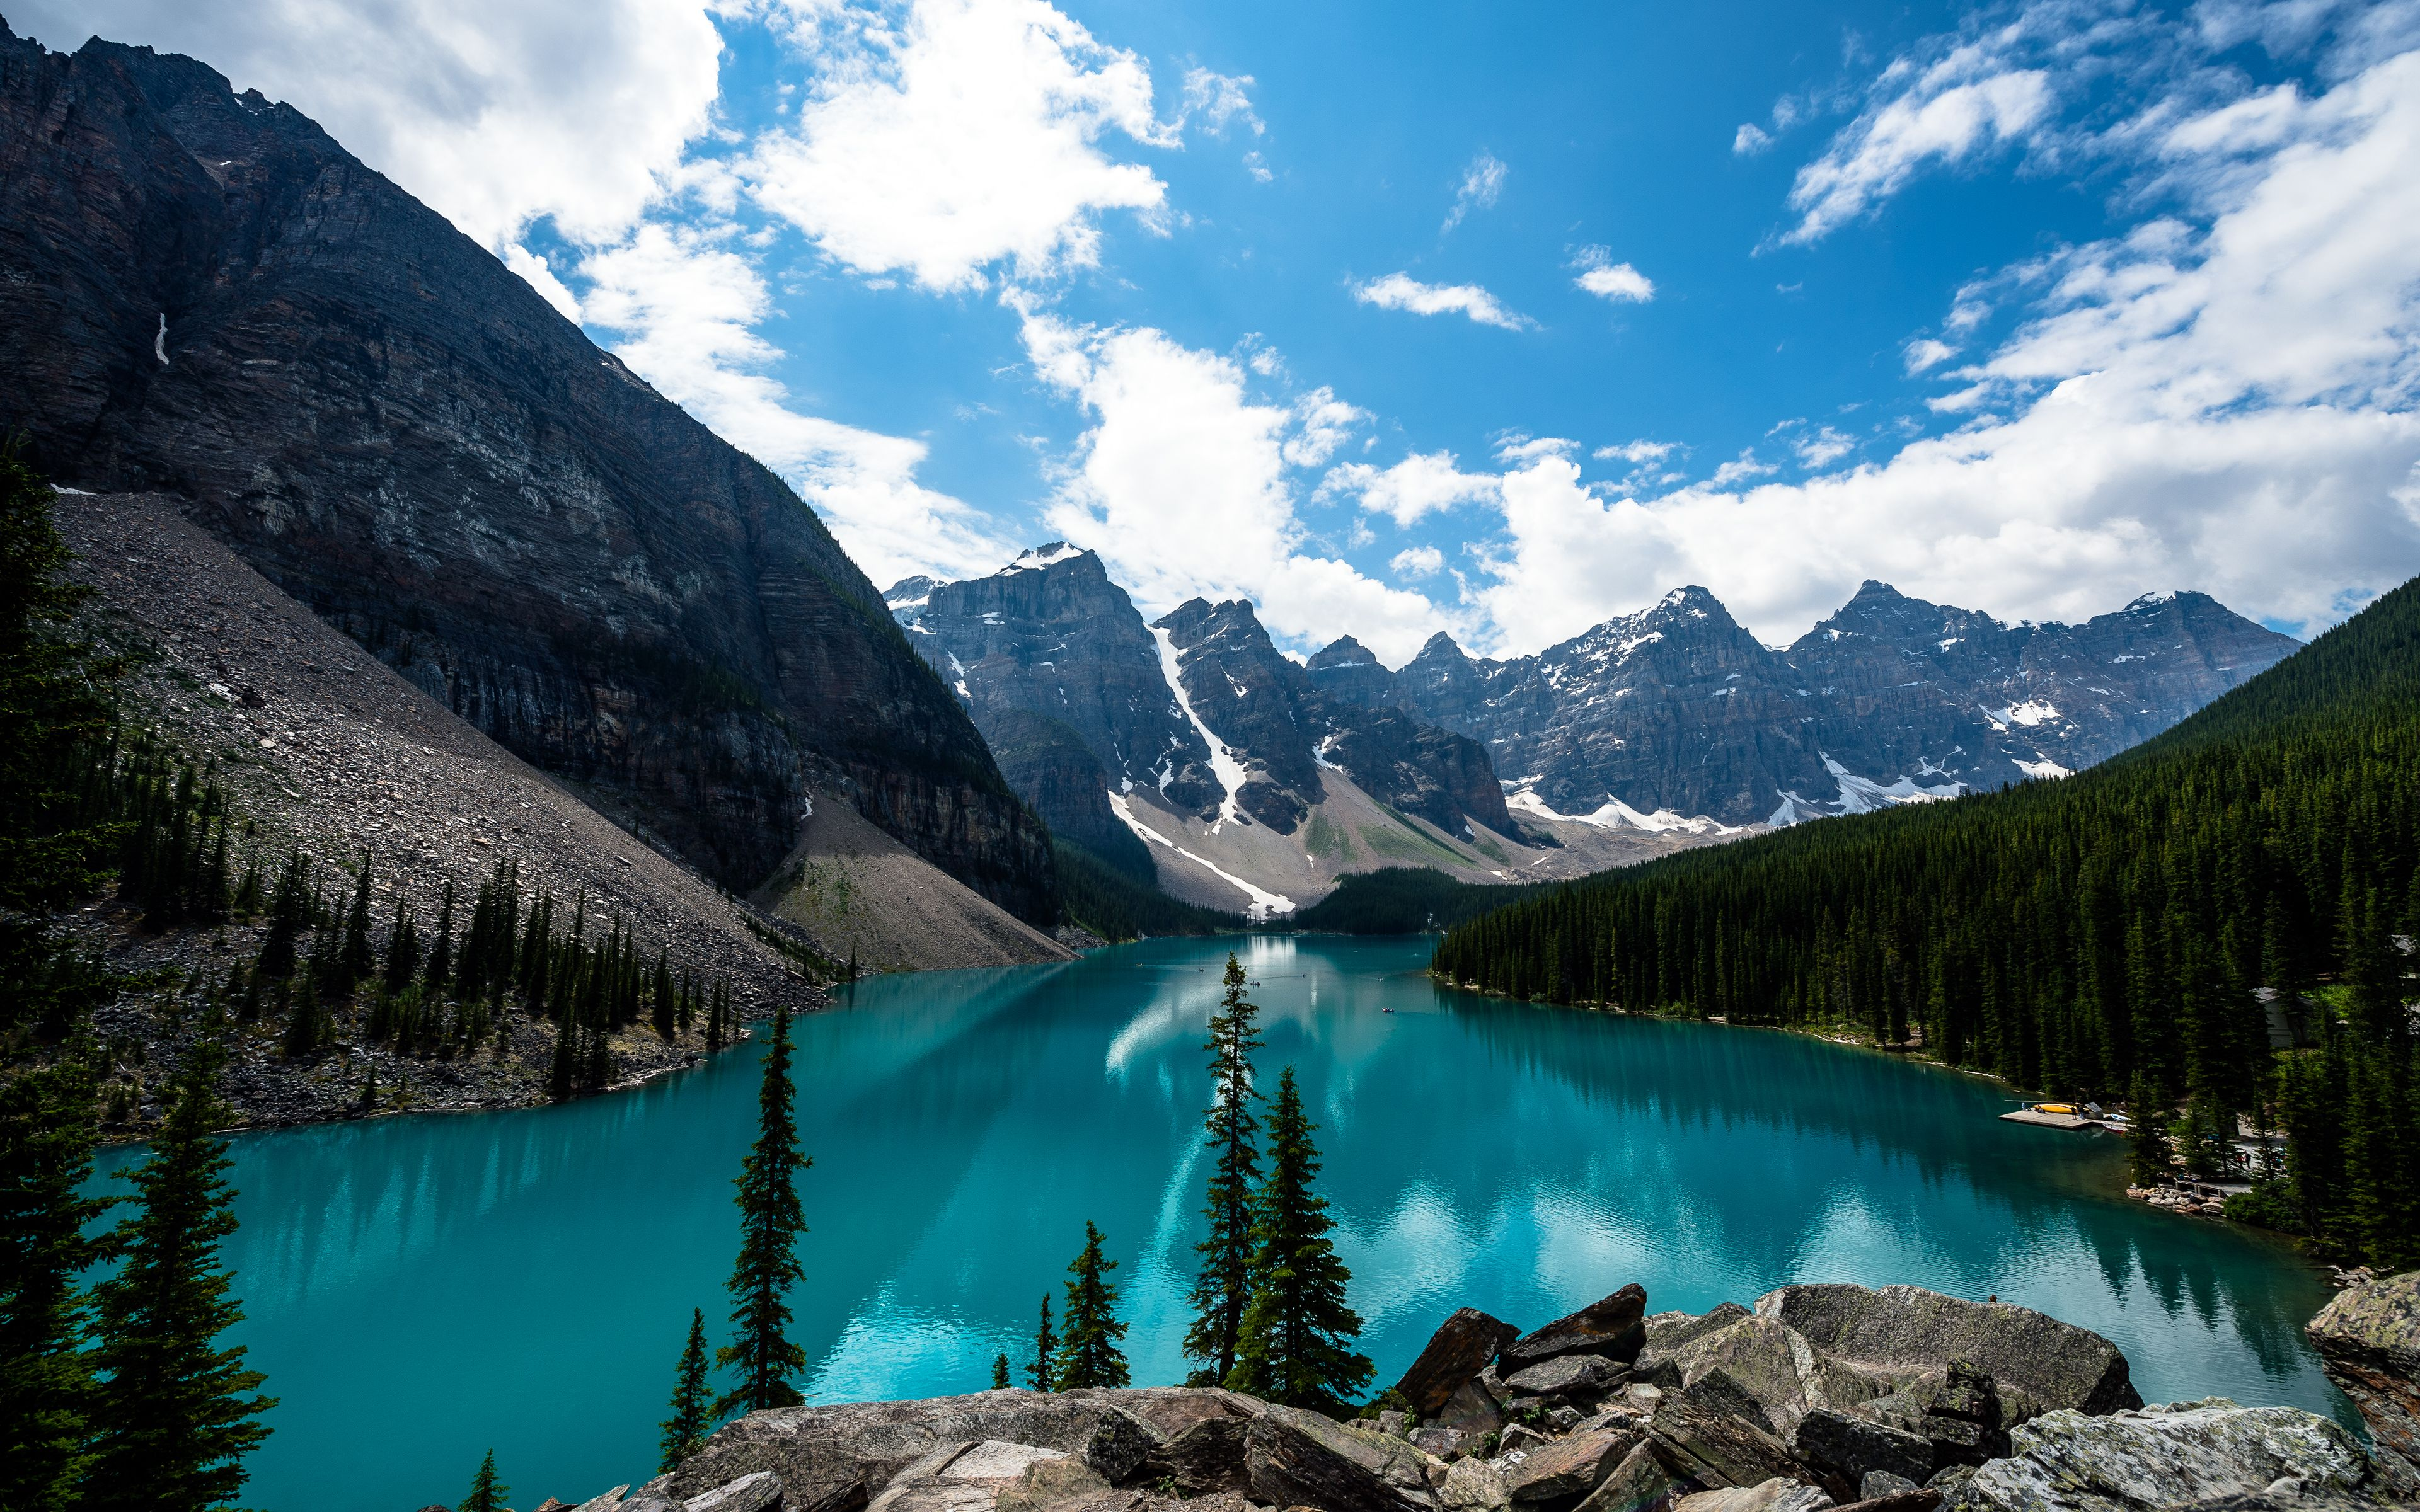 Wallpapers Moraine Lake, Lake Louise, Banff National Park, Canada